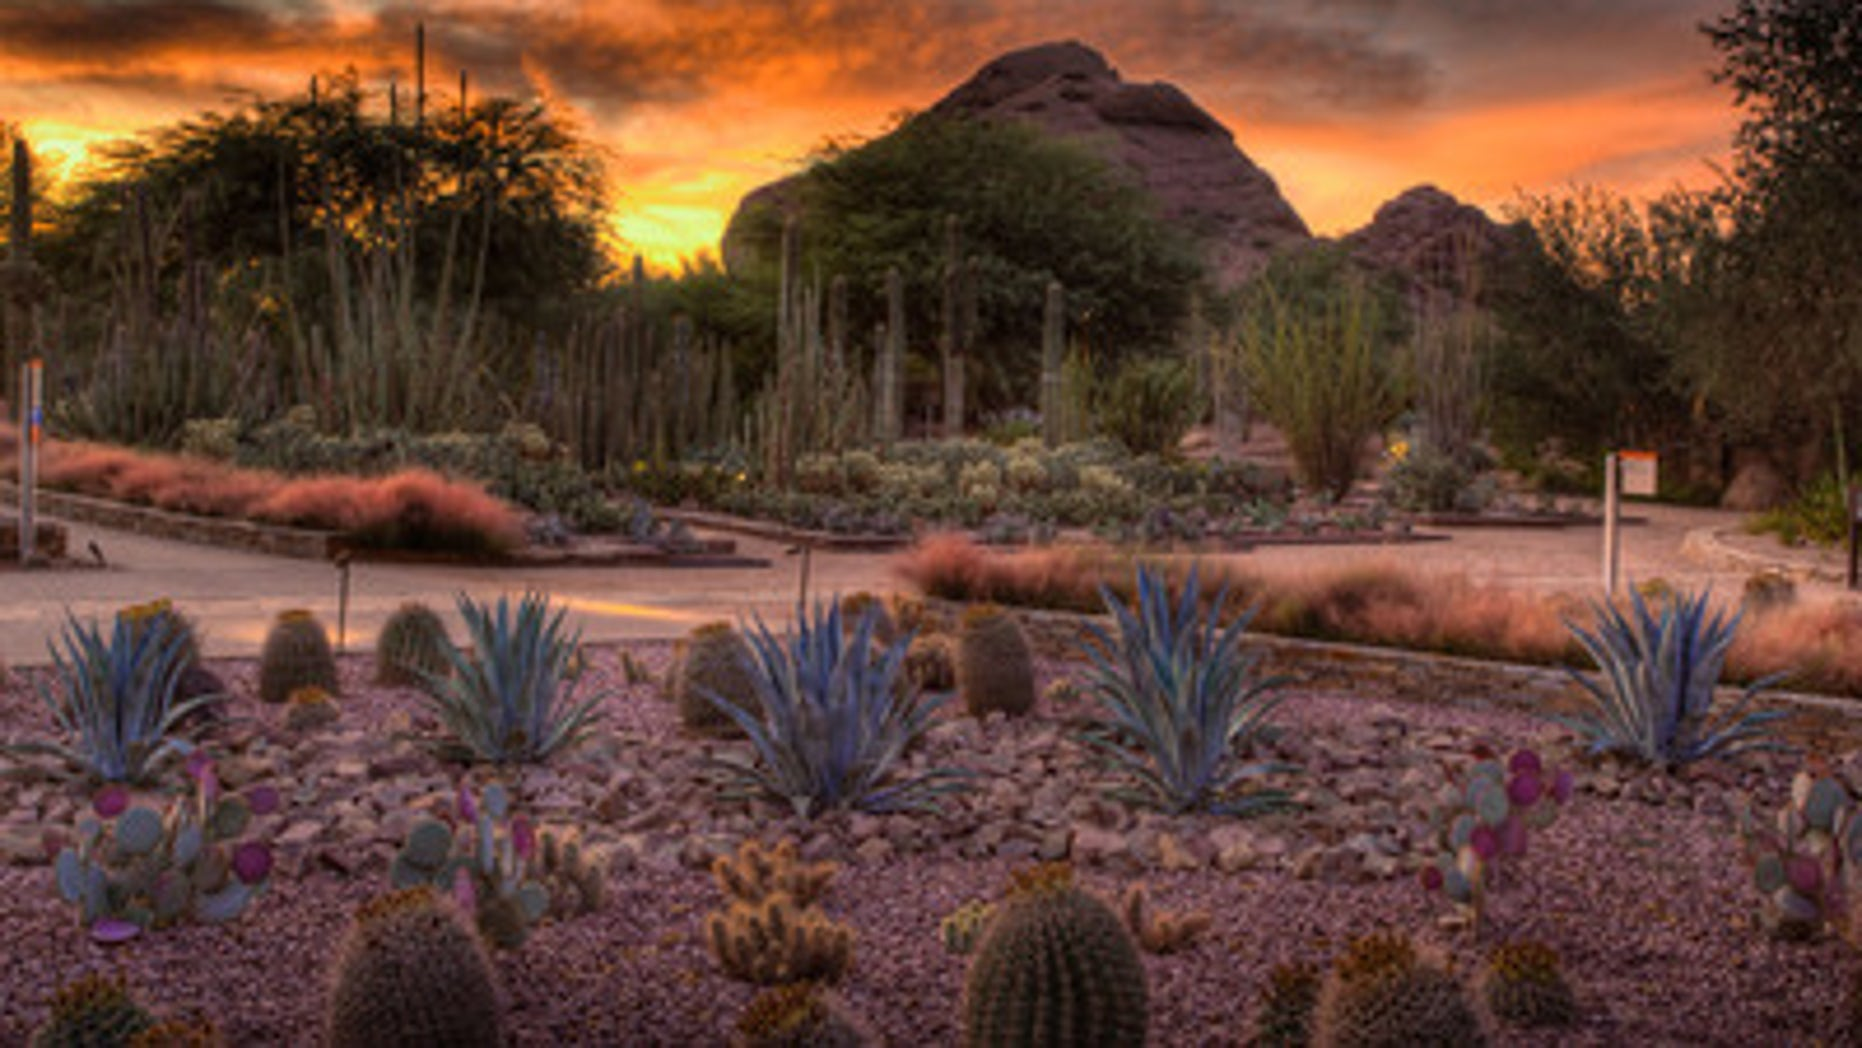 Desert Botanical Garden Ottosen Entry Garden at sunset.